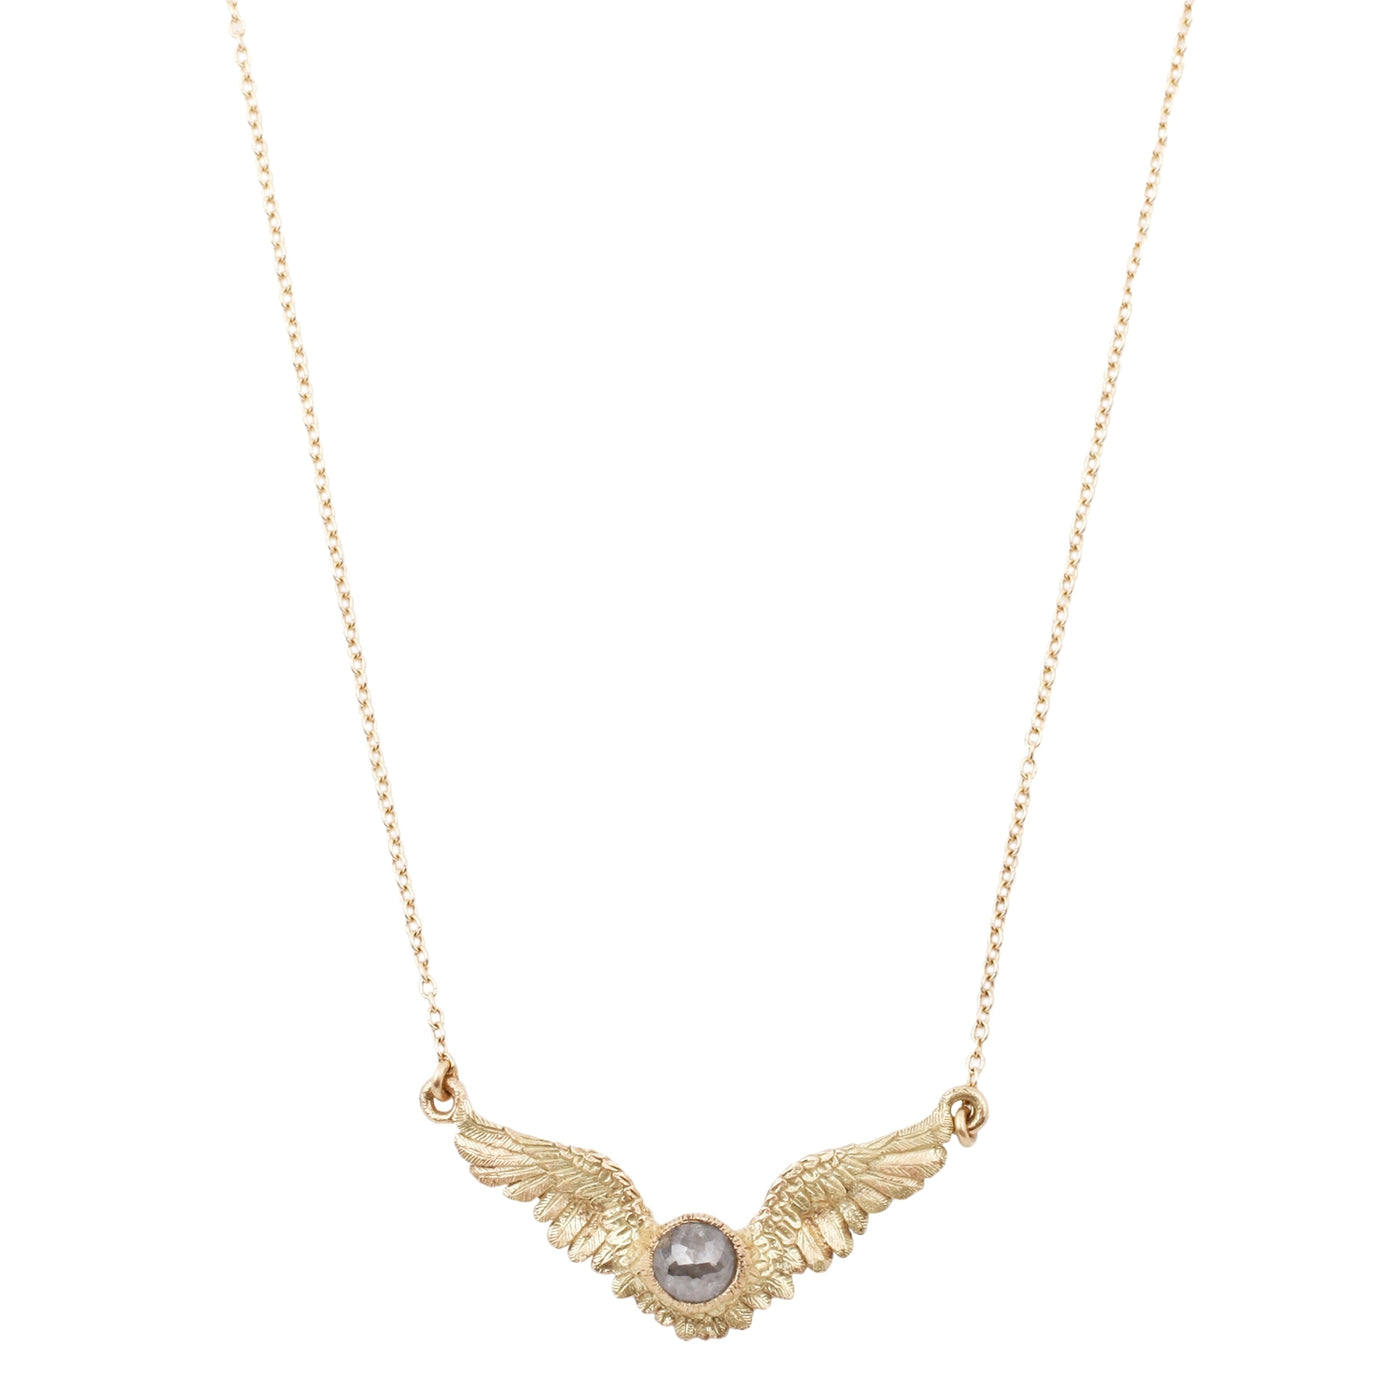 Anthony Lent Flying Diamond Necklace featuring a gray, rose cut diamond.